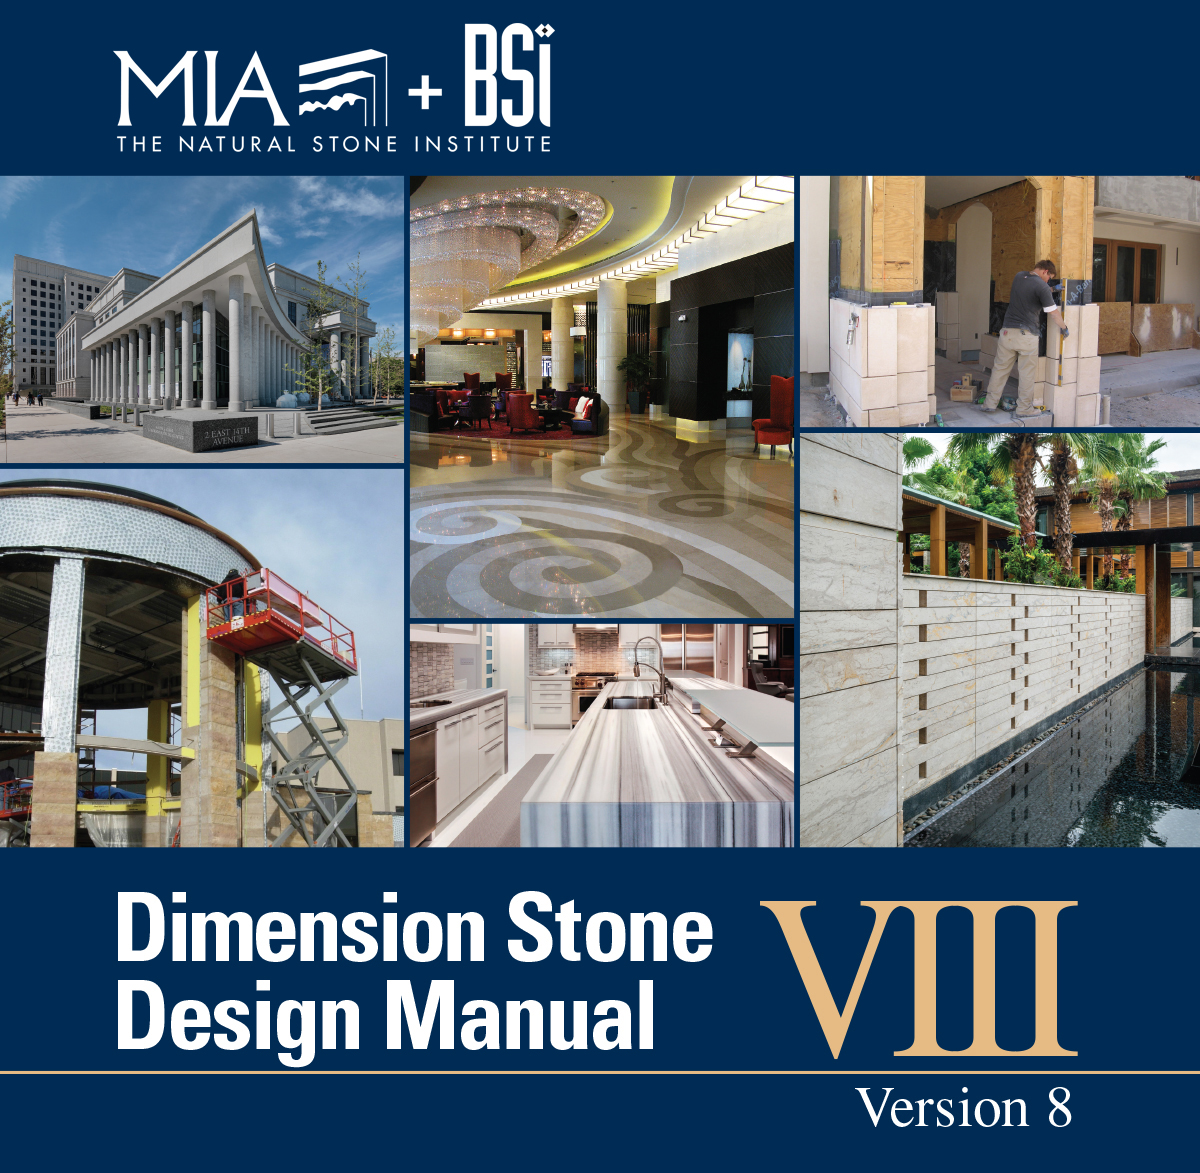 DSDM-8-MIA_BSI-newest-cover.jpg